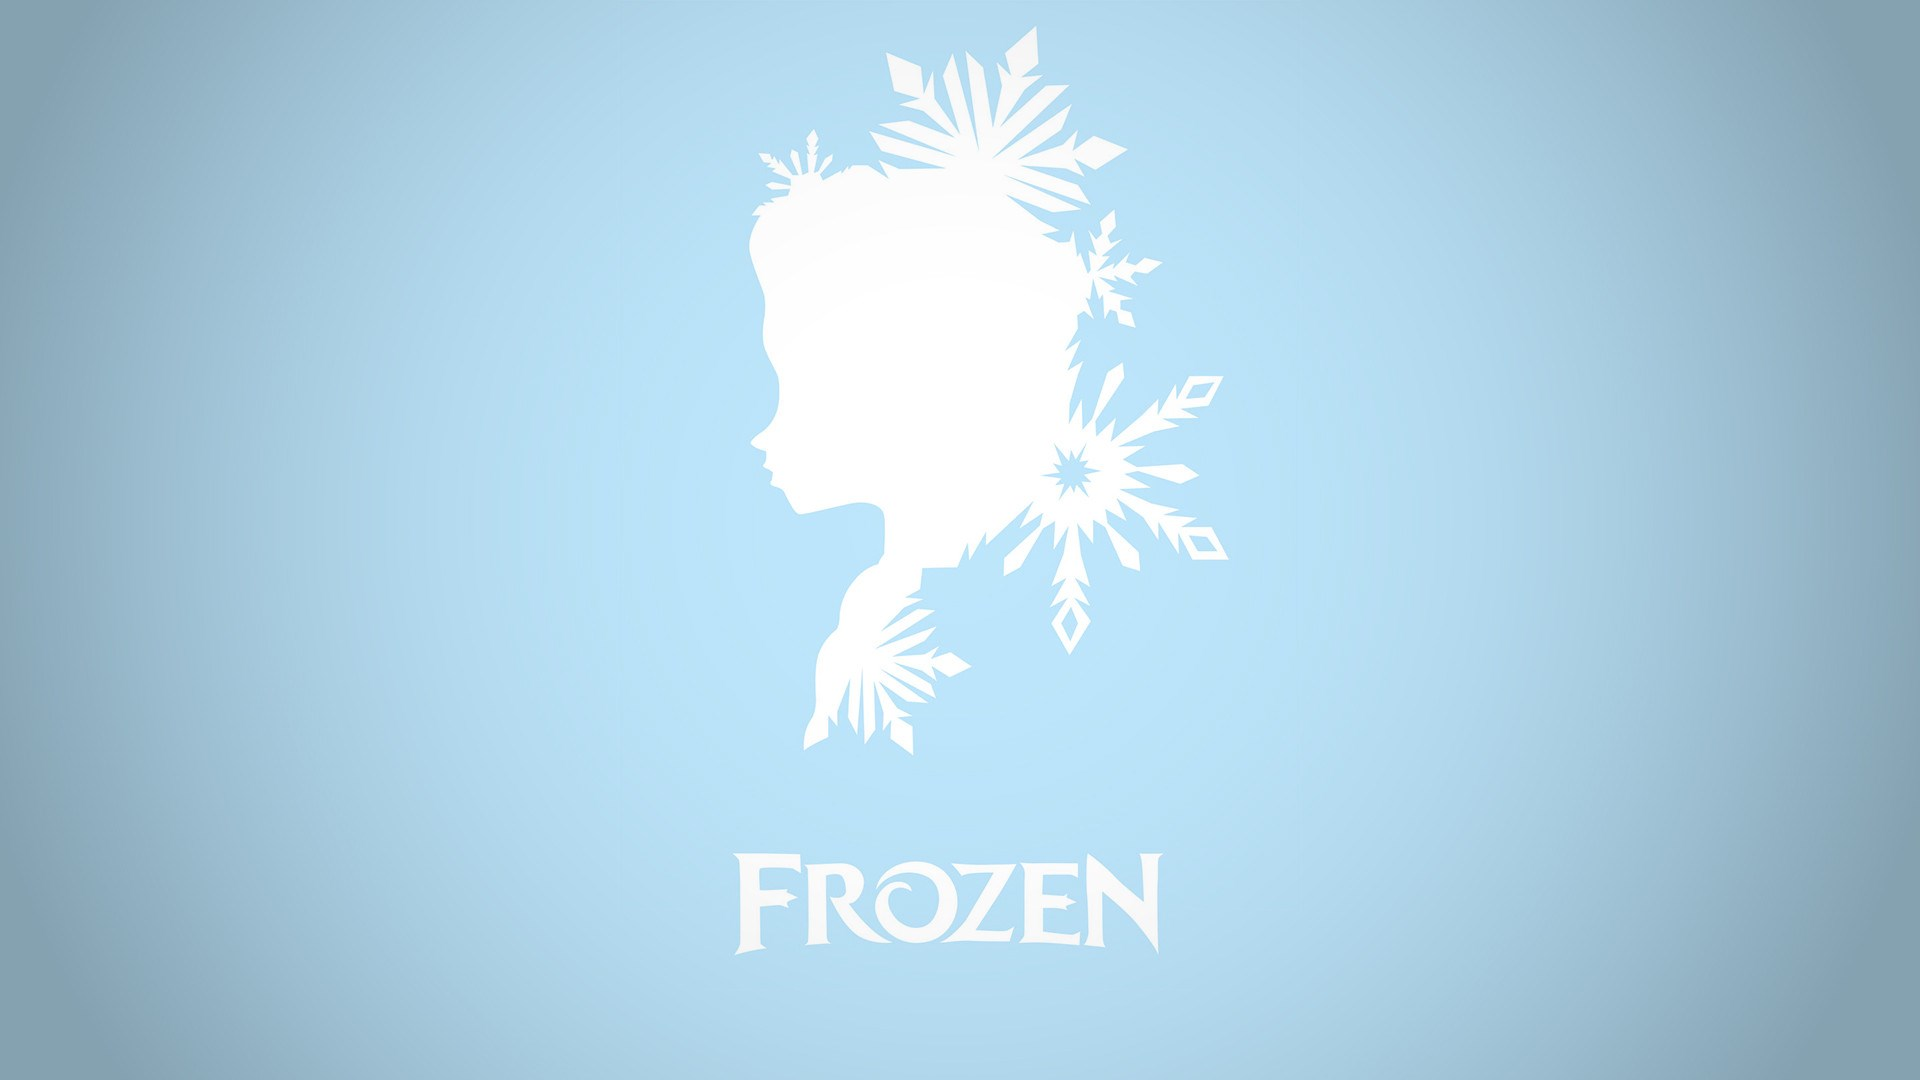 disney minimalist wallpaper wallpapersafari